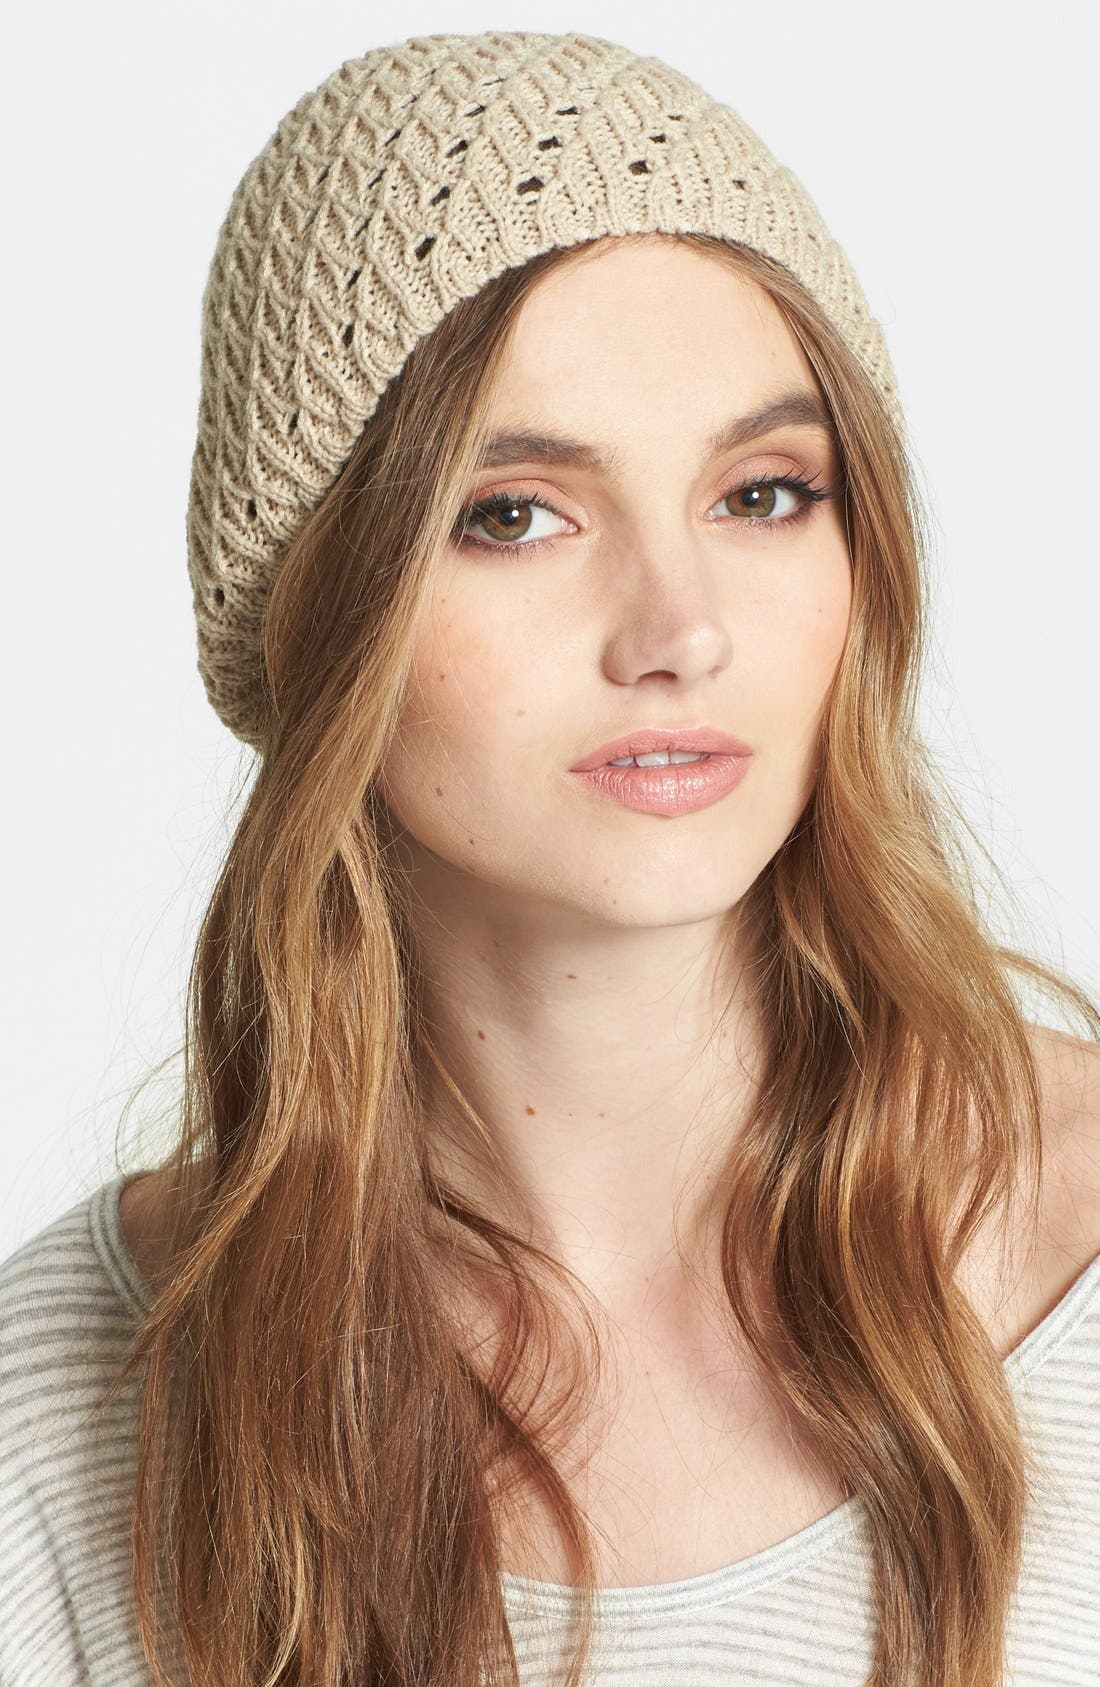 Alternate Image 1 Selected - Nordstrom Knit Beanie